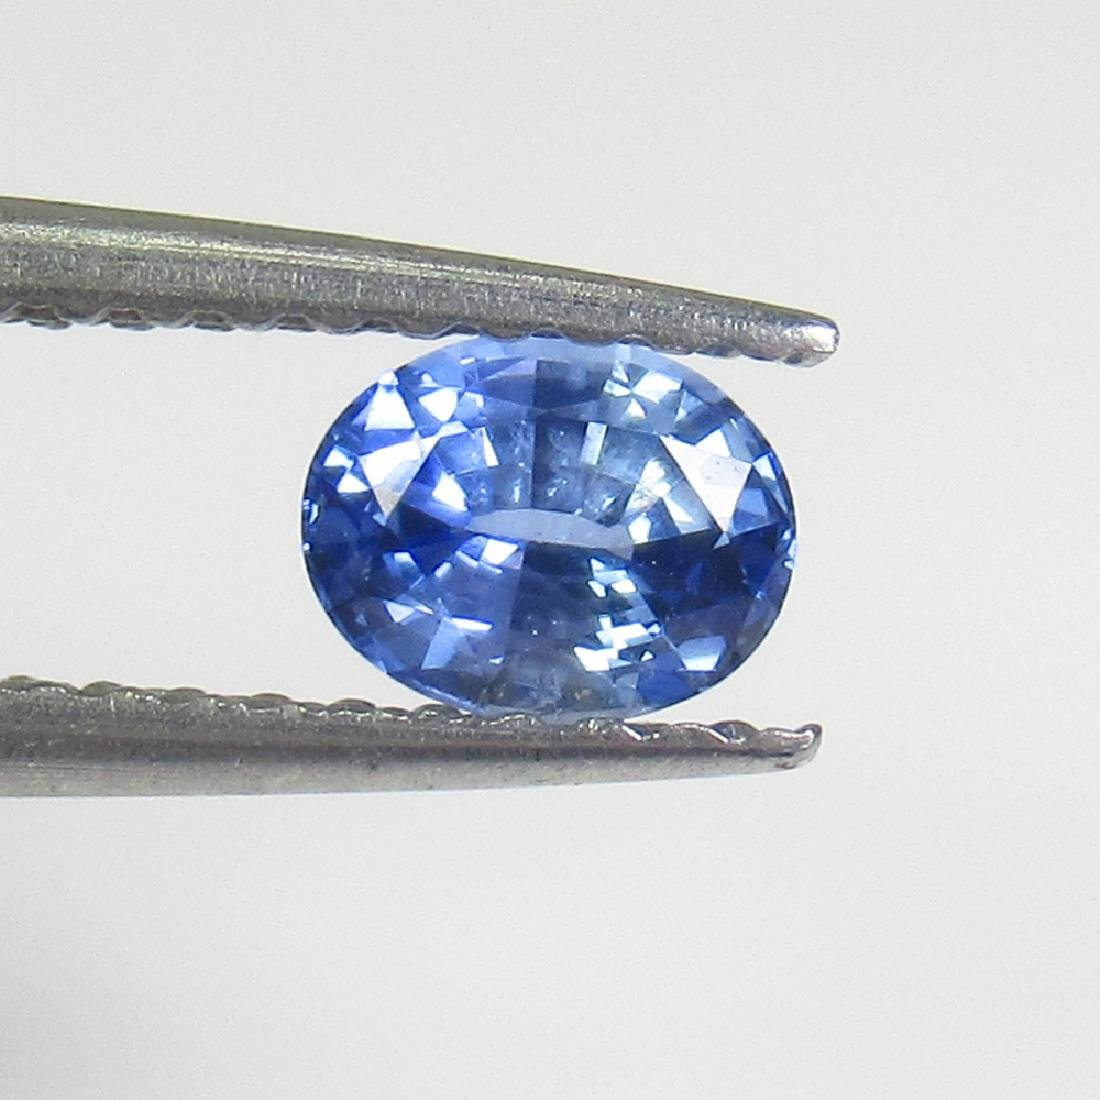 0.45 Ctw Natural Ceylon Blue Sapphire 5X4 mm Oval Cut